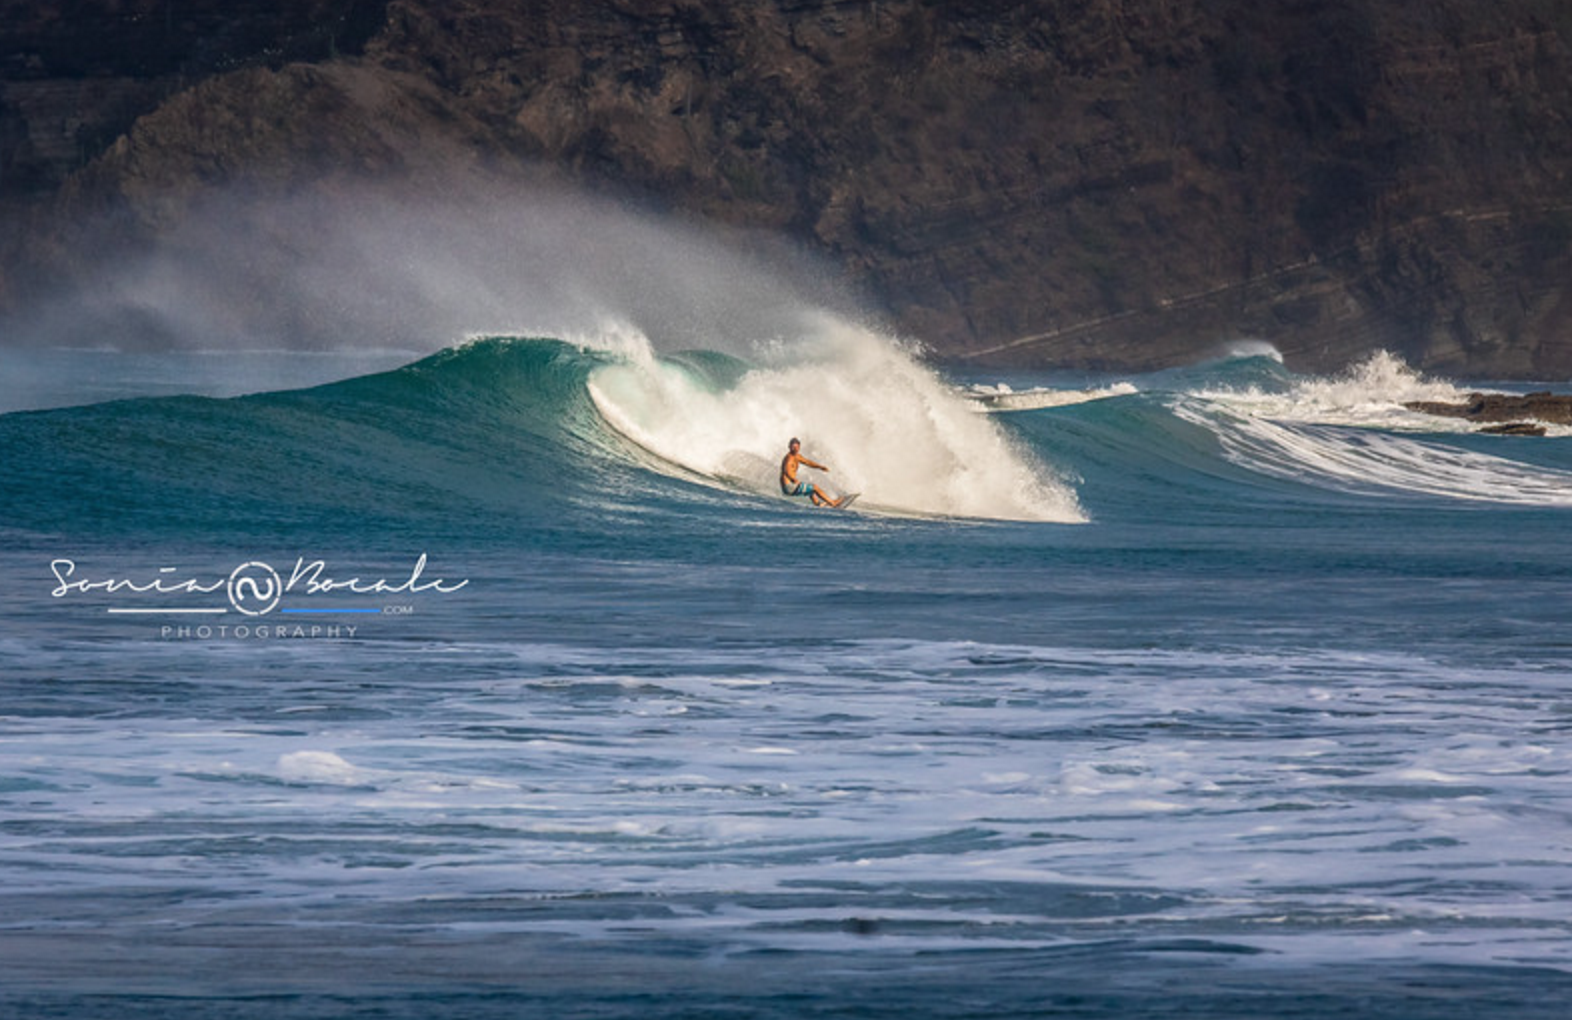 Surf Photography - Sonia Bocale